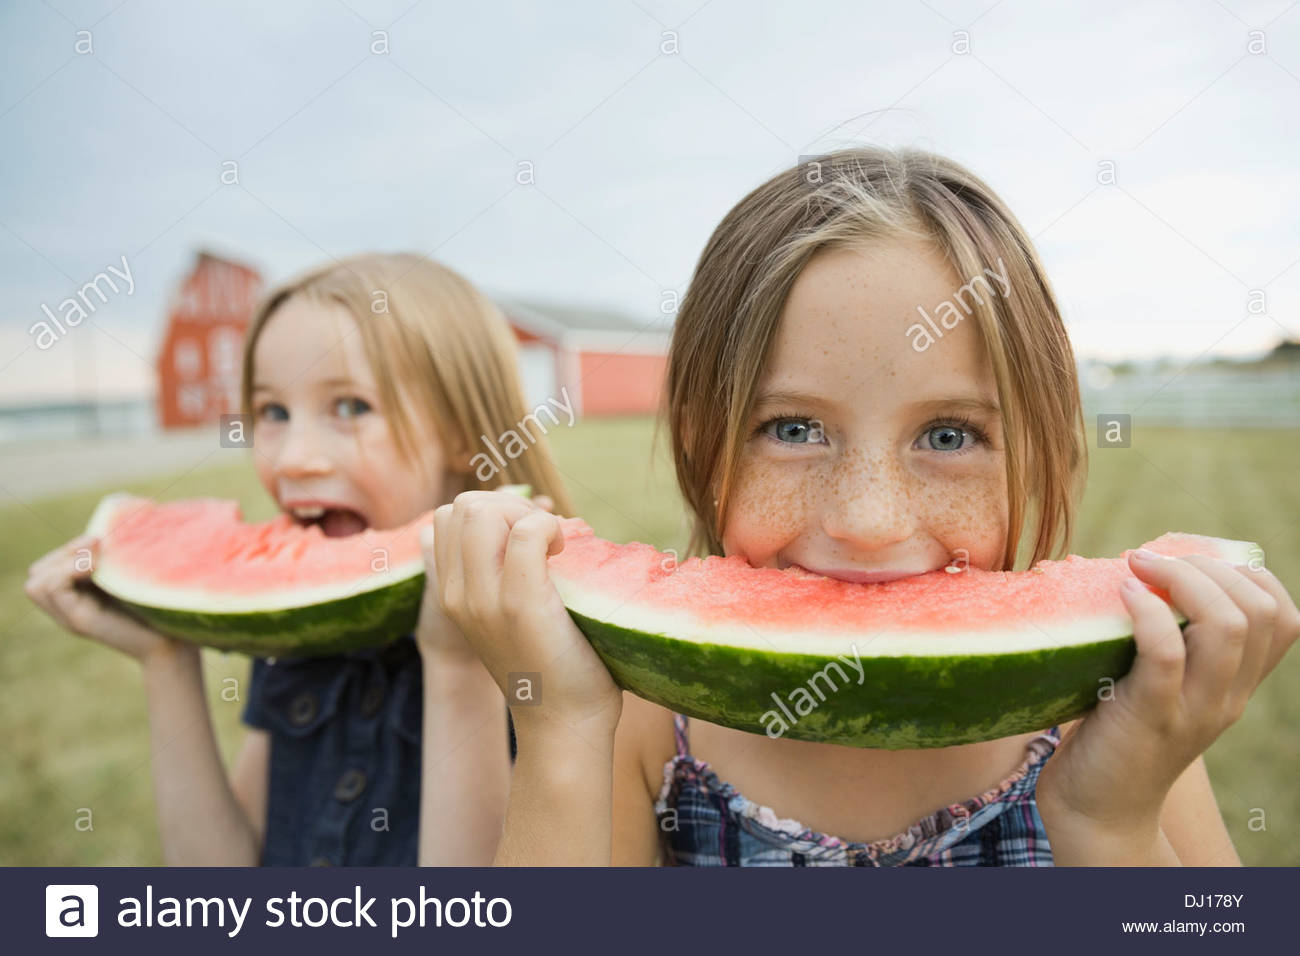 Portrait of girls eating watermelon slices outdoors - Stock Image